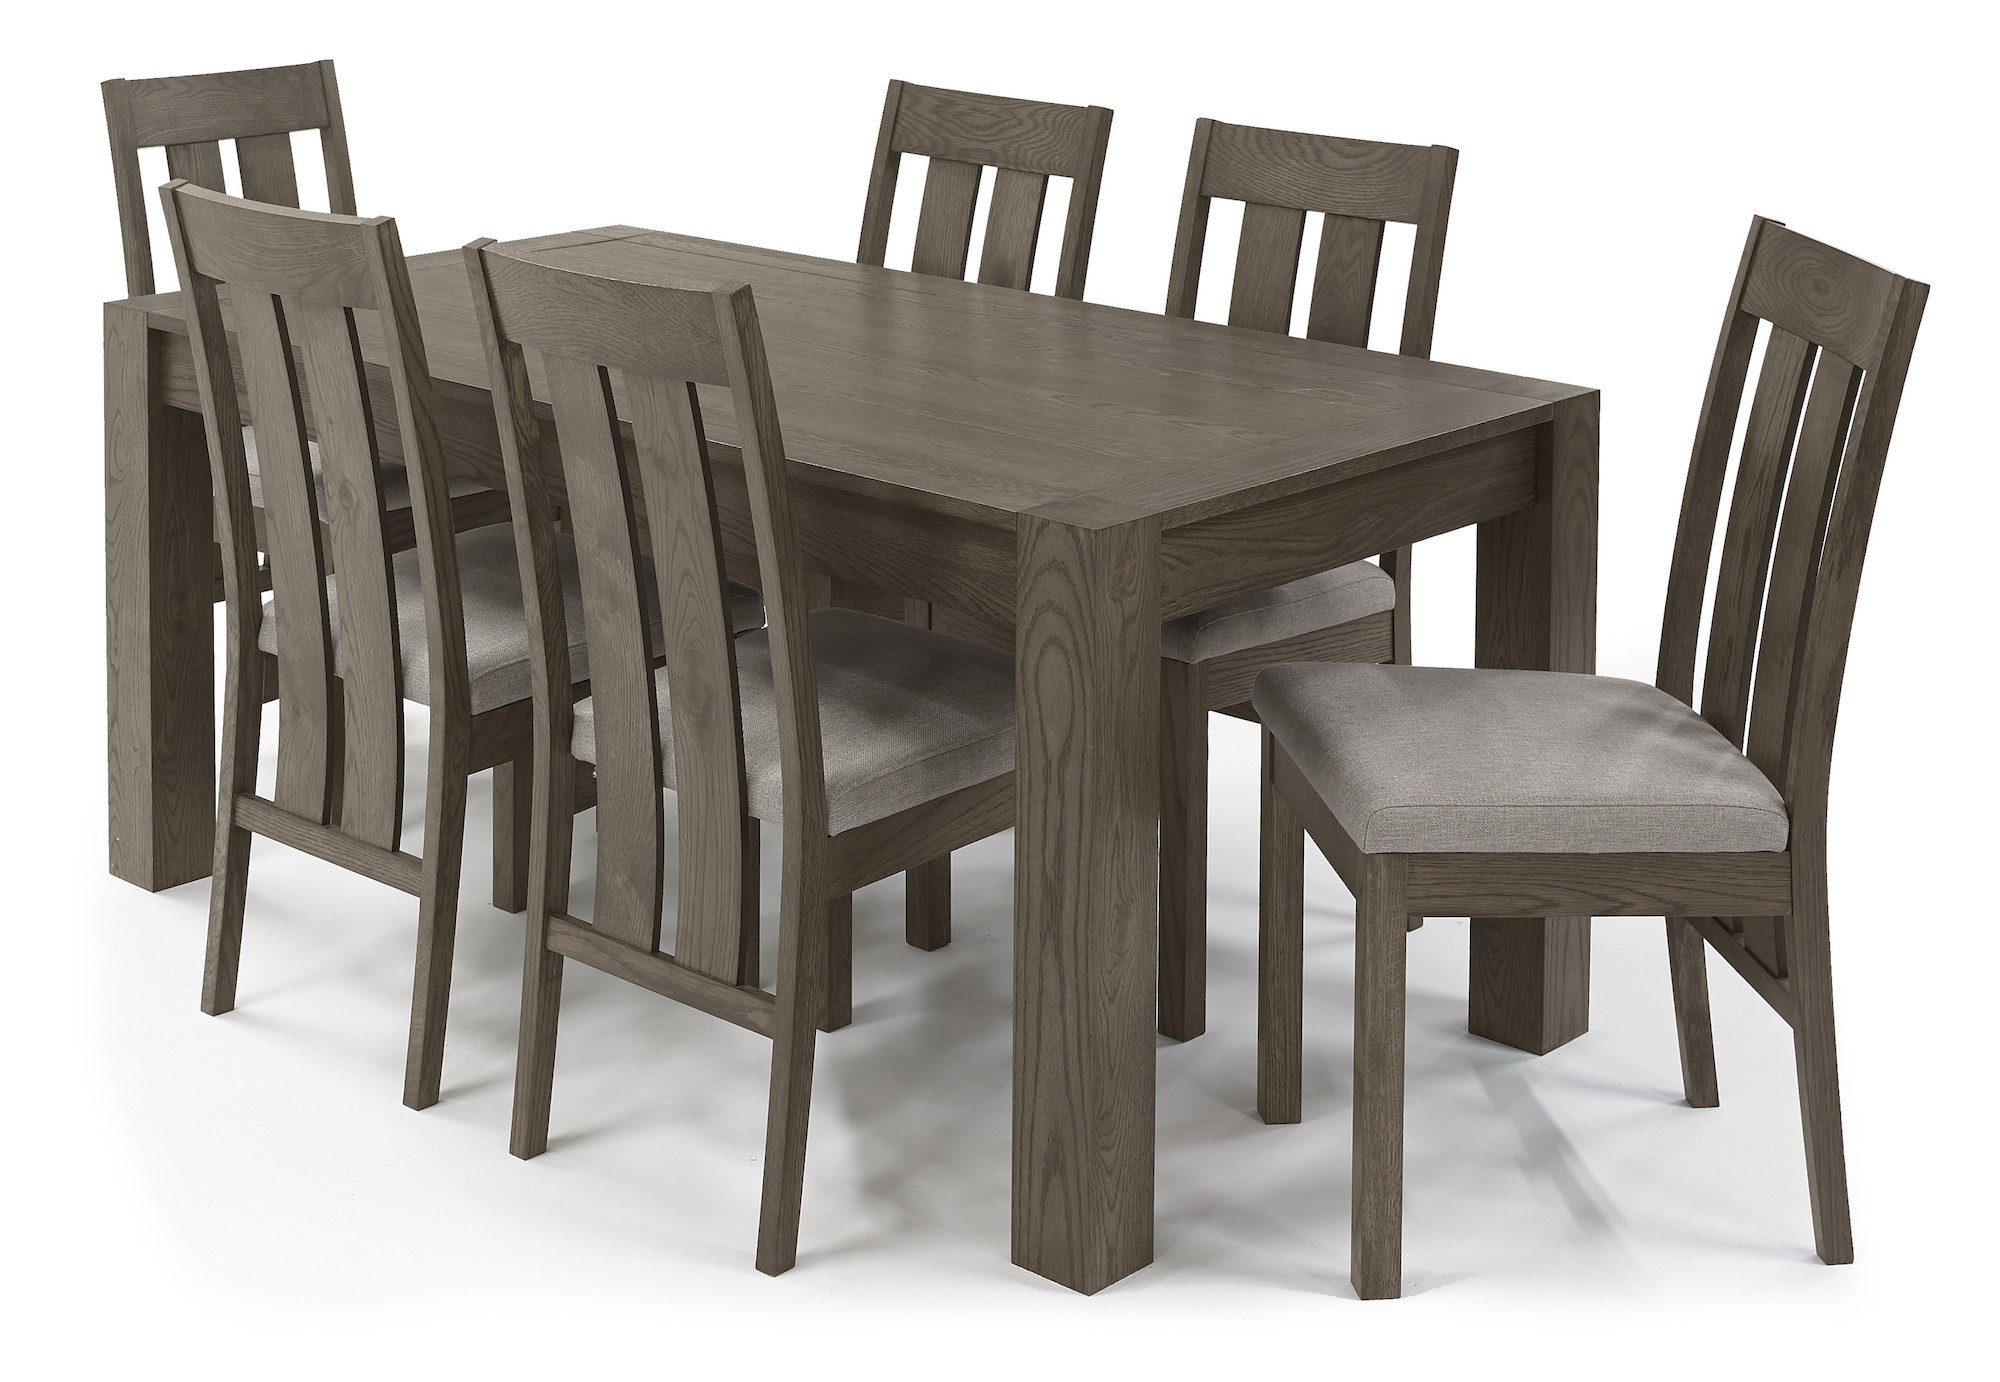 Medium Dining Tables For Favorite Turin Dark Oak Dining Table Medium 4 6 Seater End Extension Dining Table (View 13 of 30)